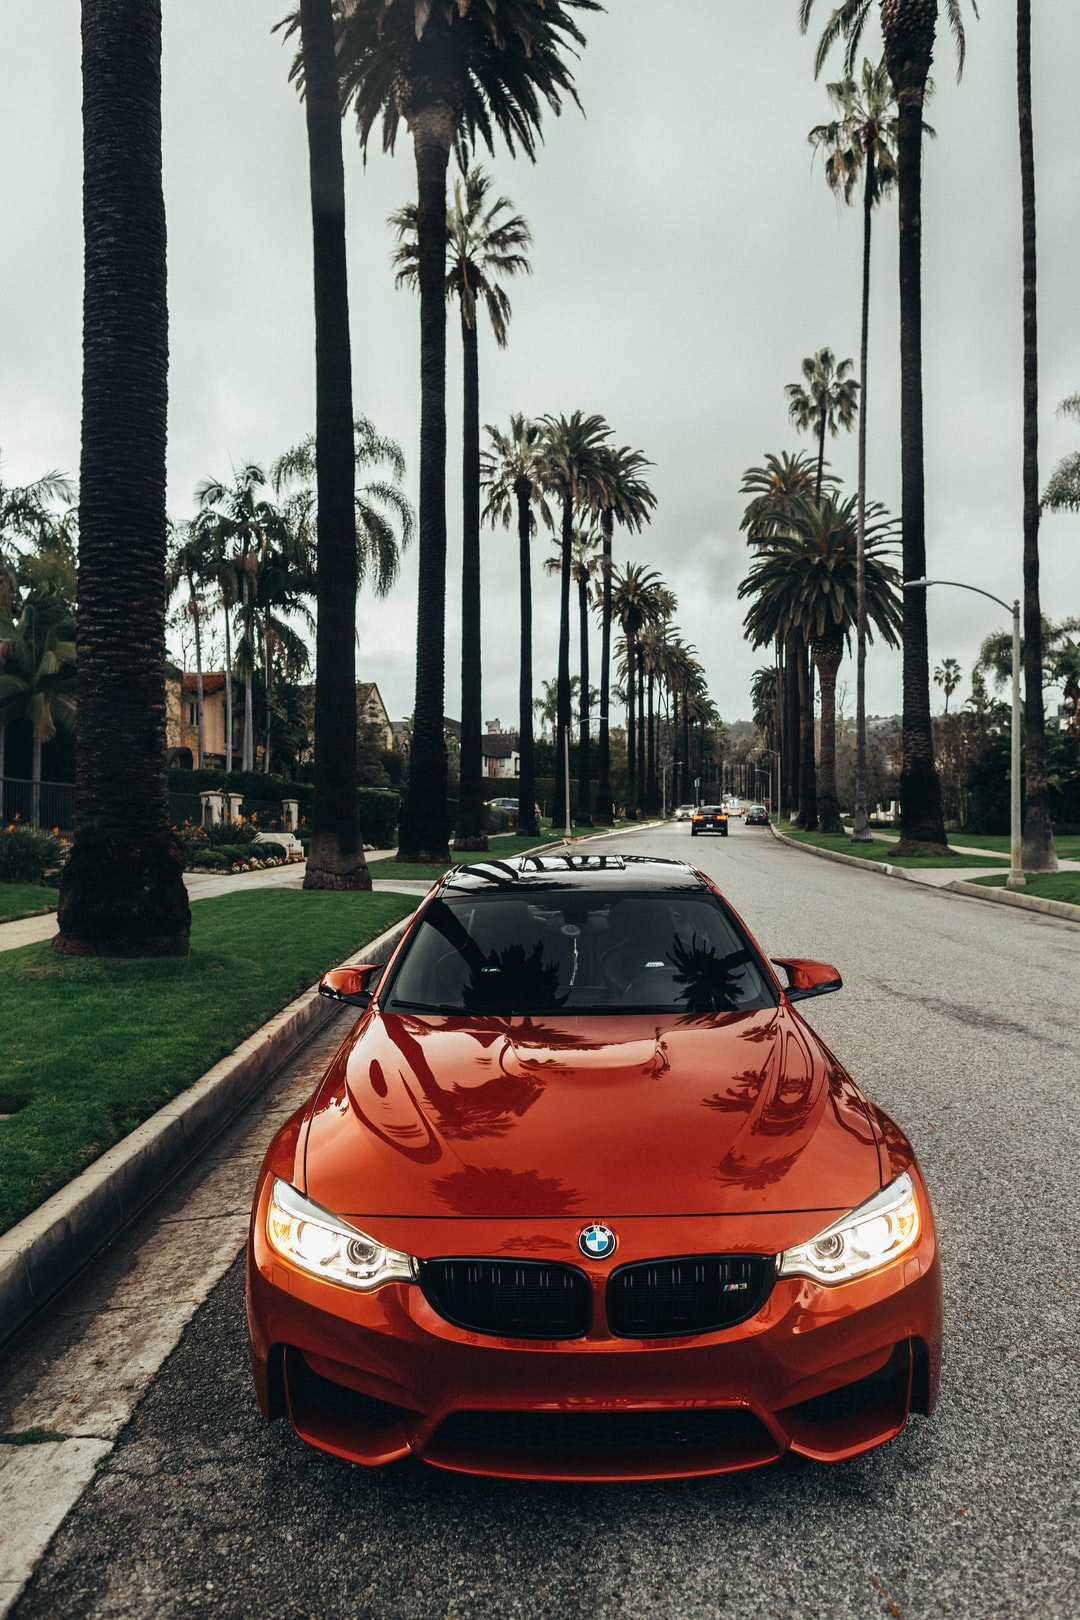 Should You Start Making Money With Your Car?